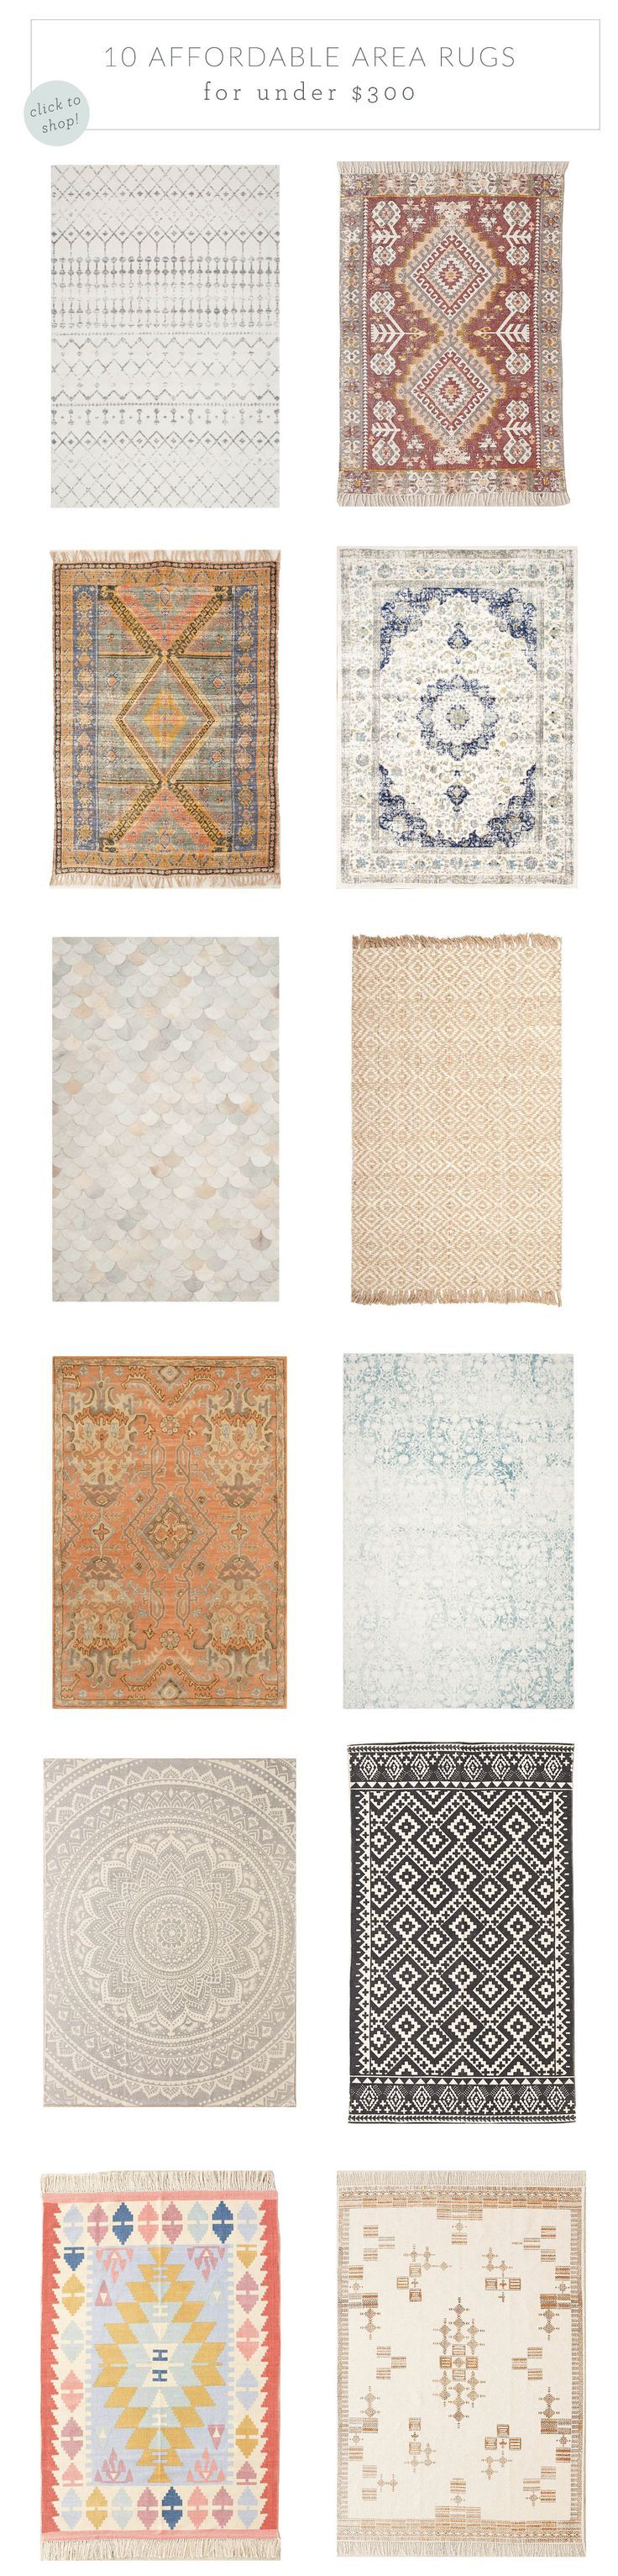 10 Affordable Area Rugs for Under $300 | Advice from a Twenty Something